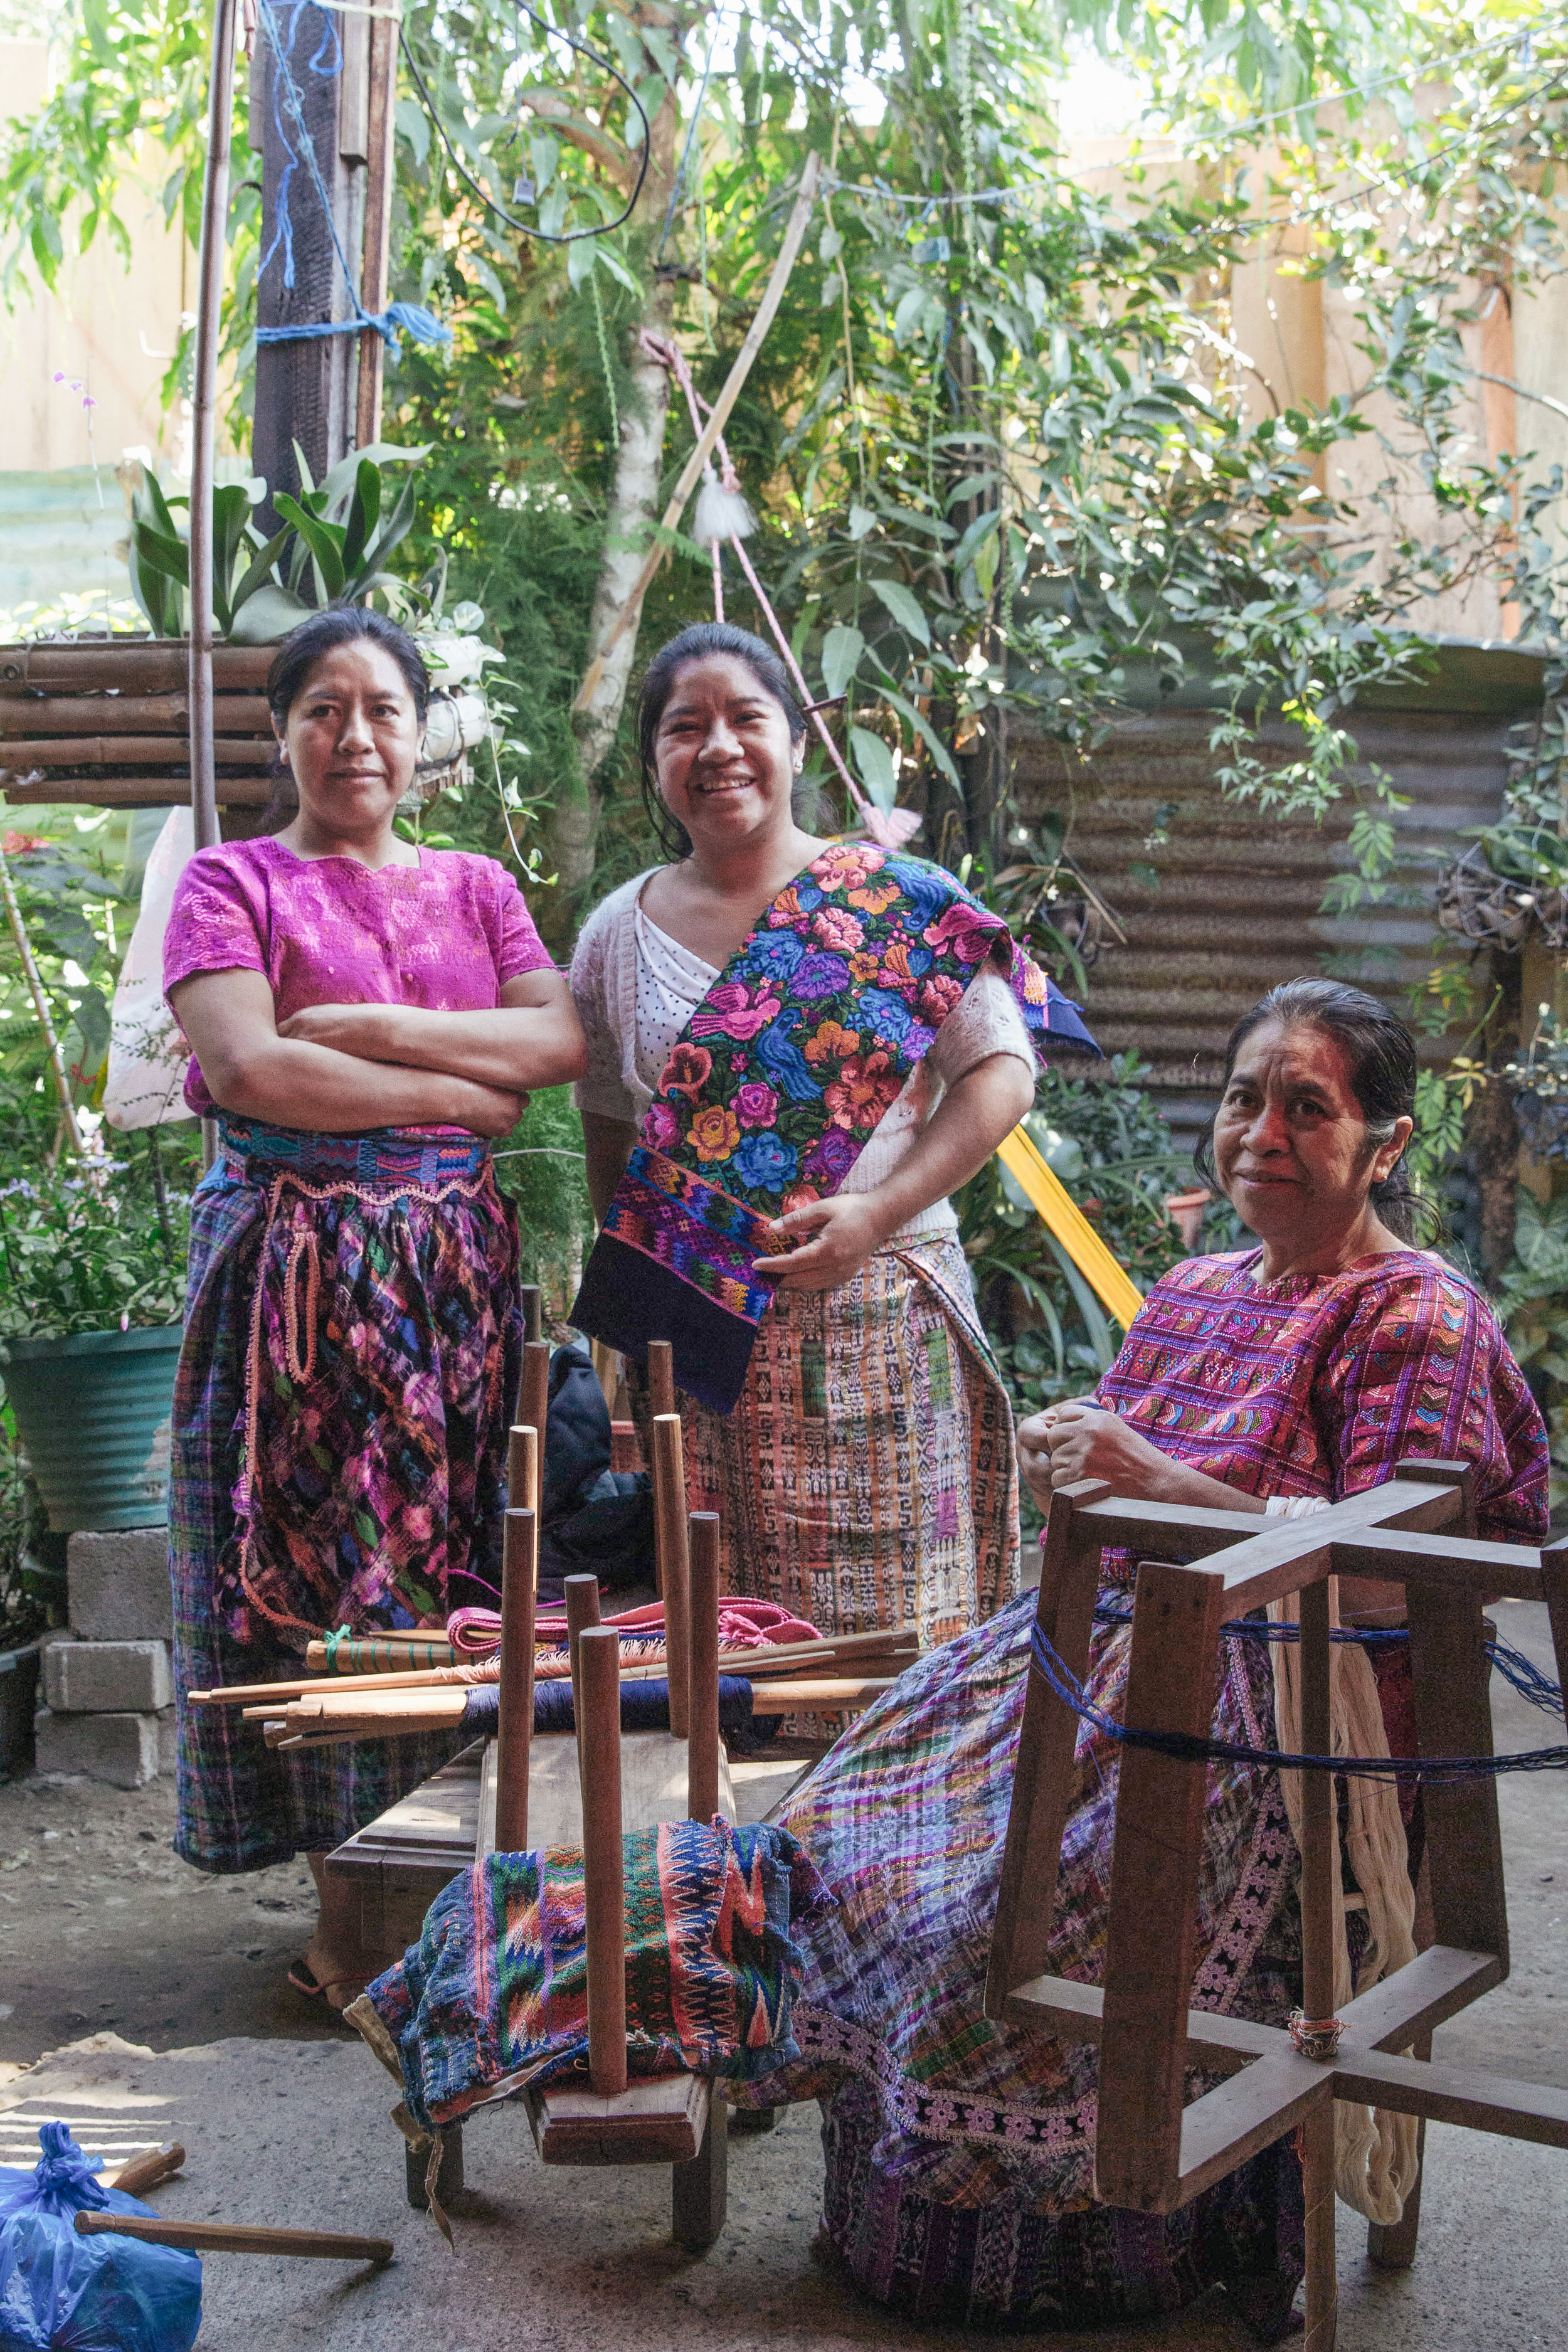 FROM LEFT TO RIGHT, ESMIDA MAIDE MARTINEZ, LADY AMARILIS MARTINEZ, AND ELMA LIDIA SOTZ POSE WITH THEIR HANDMADE TEXTILES AT THEIR HOME IN SAN ANTONIO, GUATEMALA ON JAN. 9. THE WOMEN WORK THREE HOURS EACH MORNING AND THREE HOURS EACH AFTERNOON, WEAVING HUIPILES.